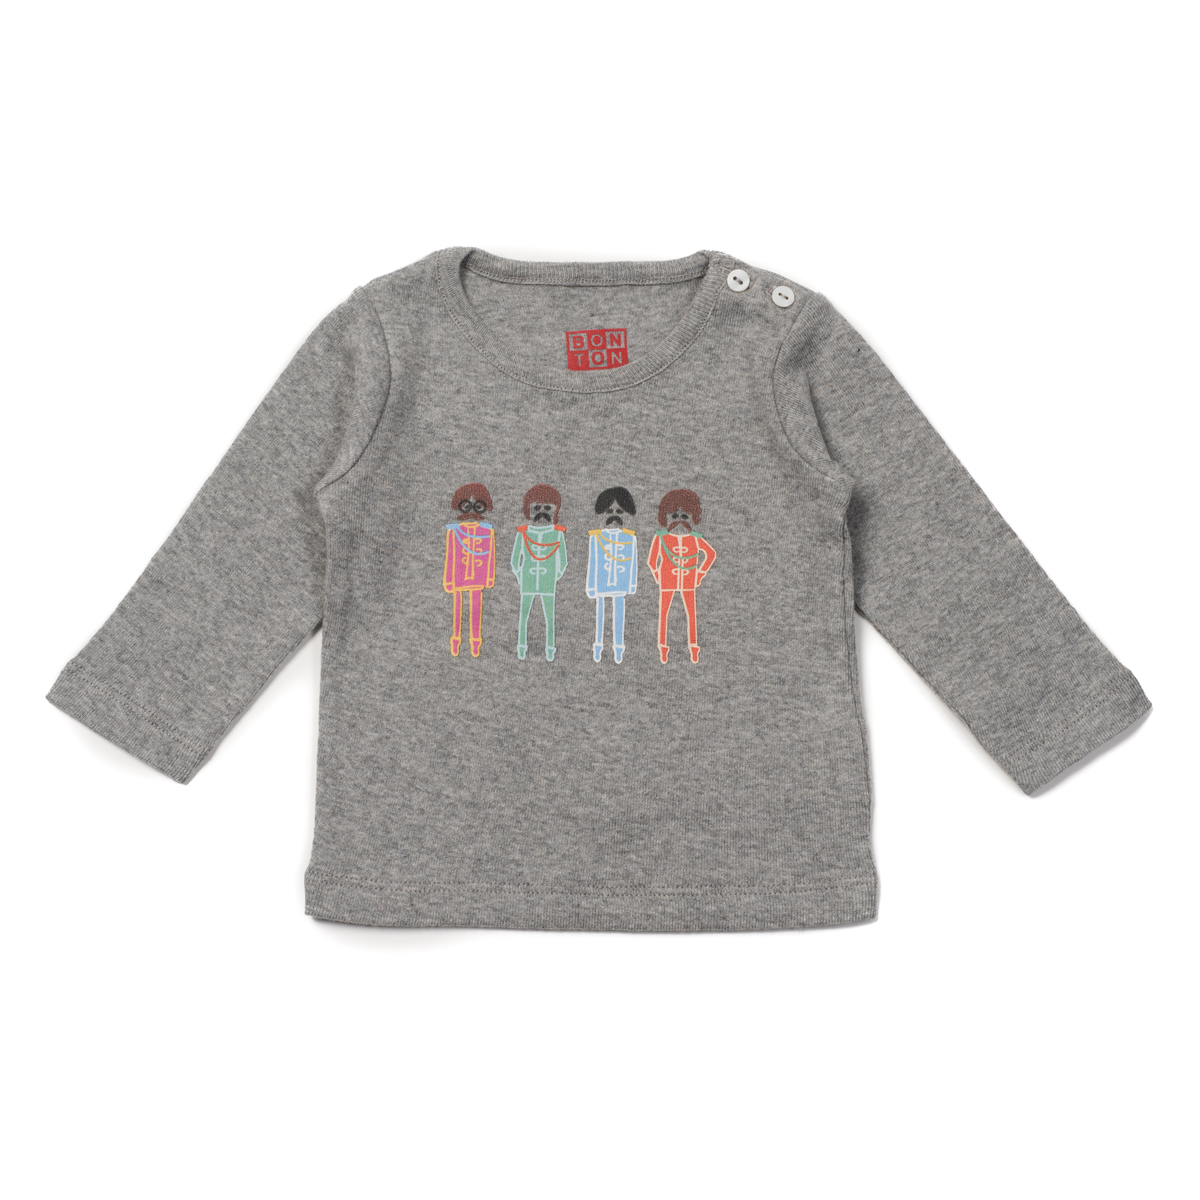 Bonton Light Grey Long Sleeve Shirt w/ Beatles band print